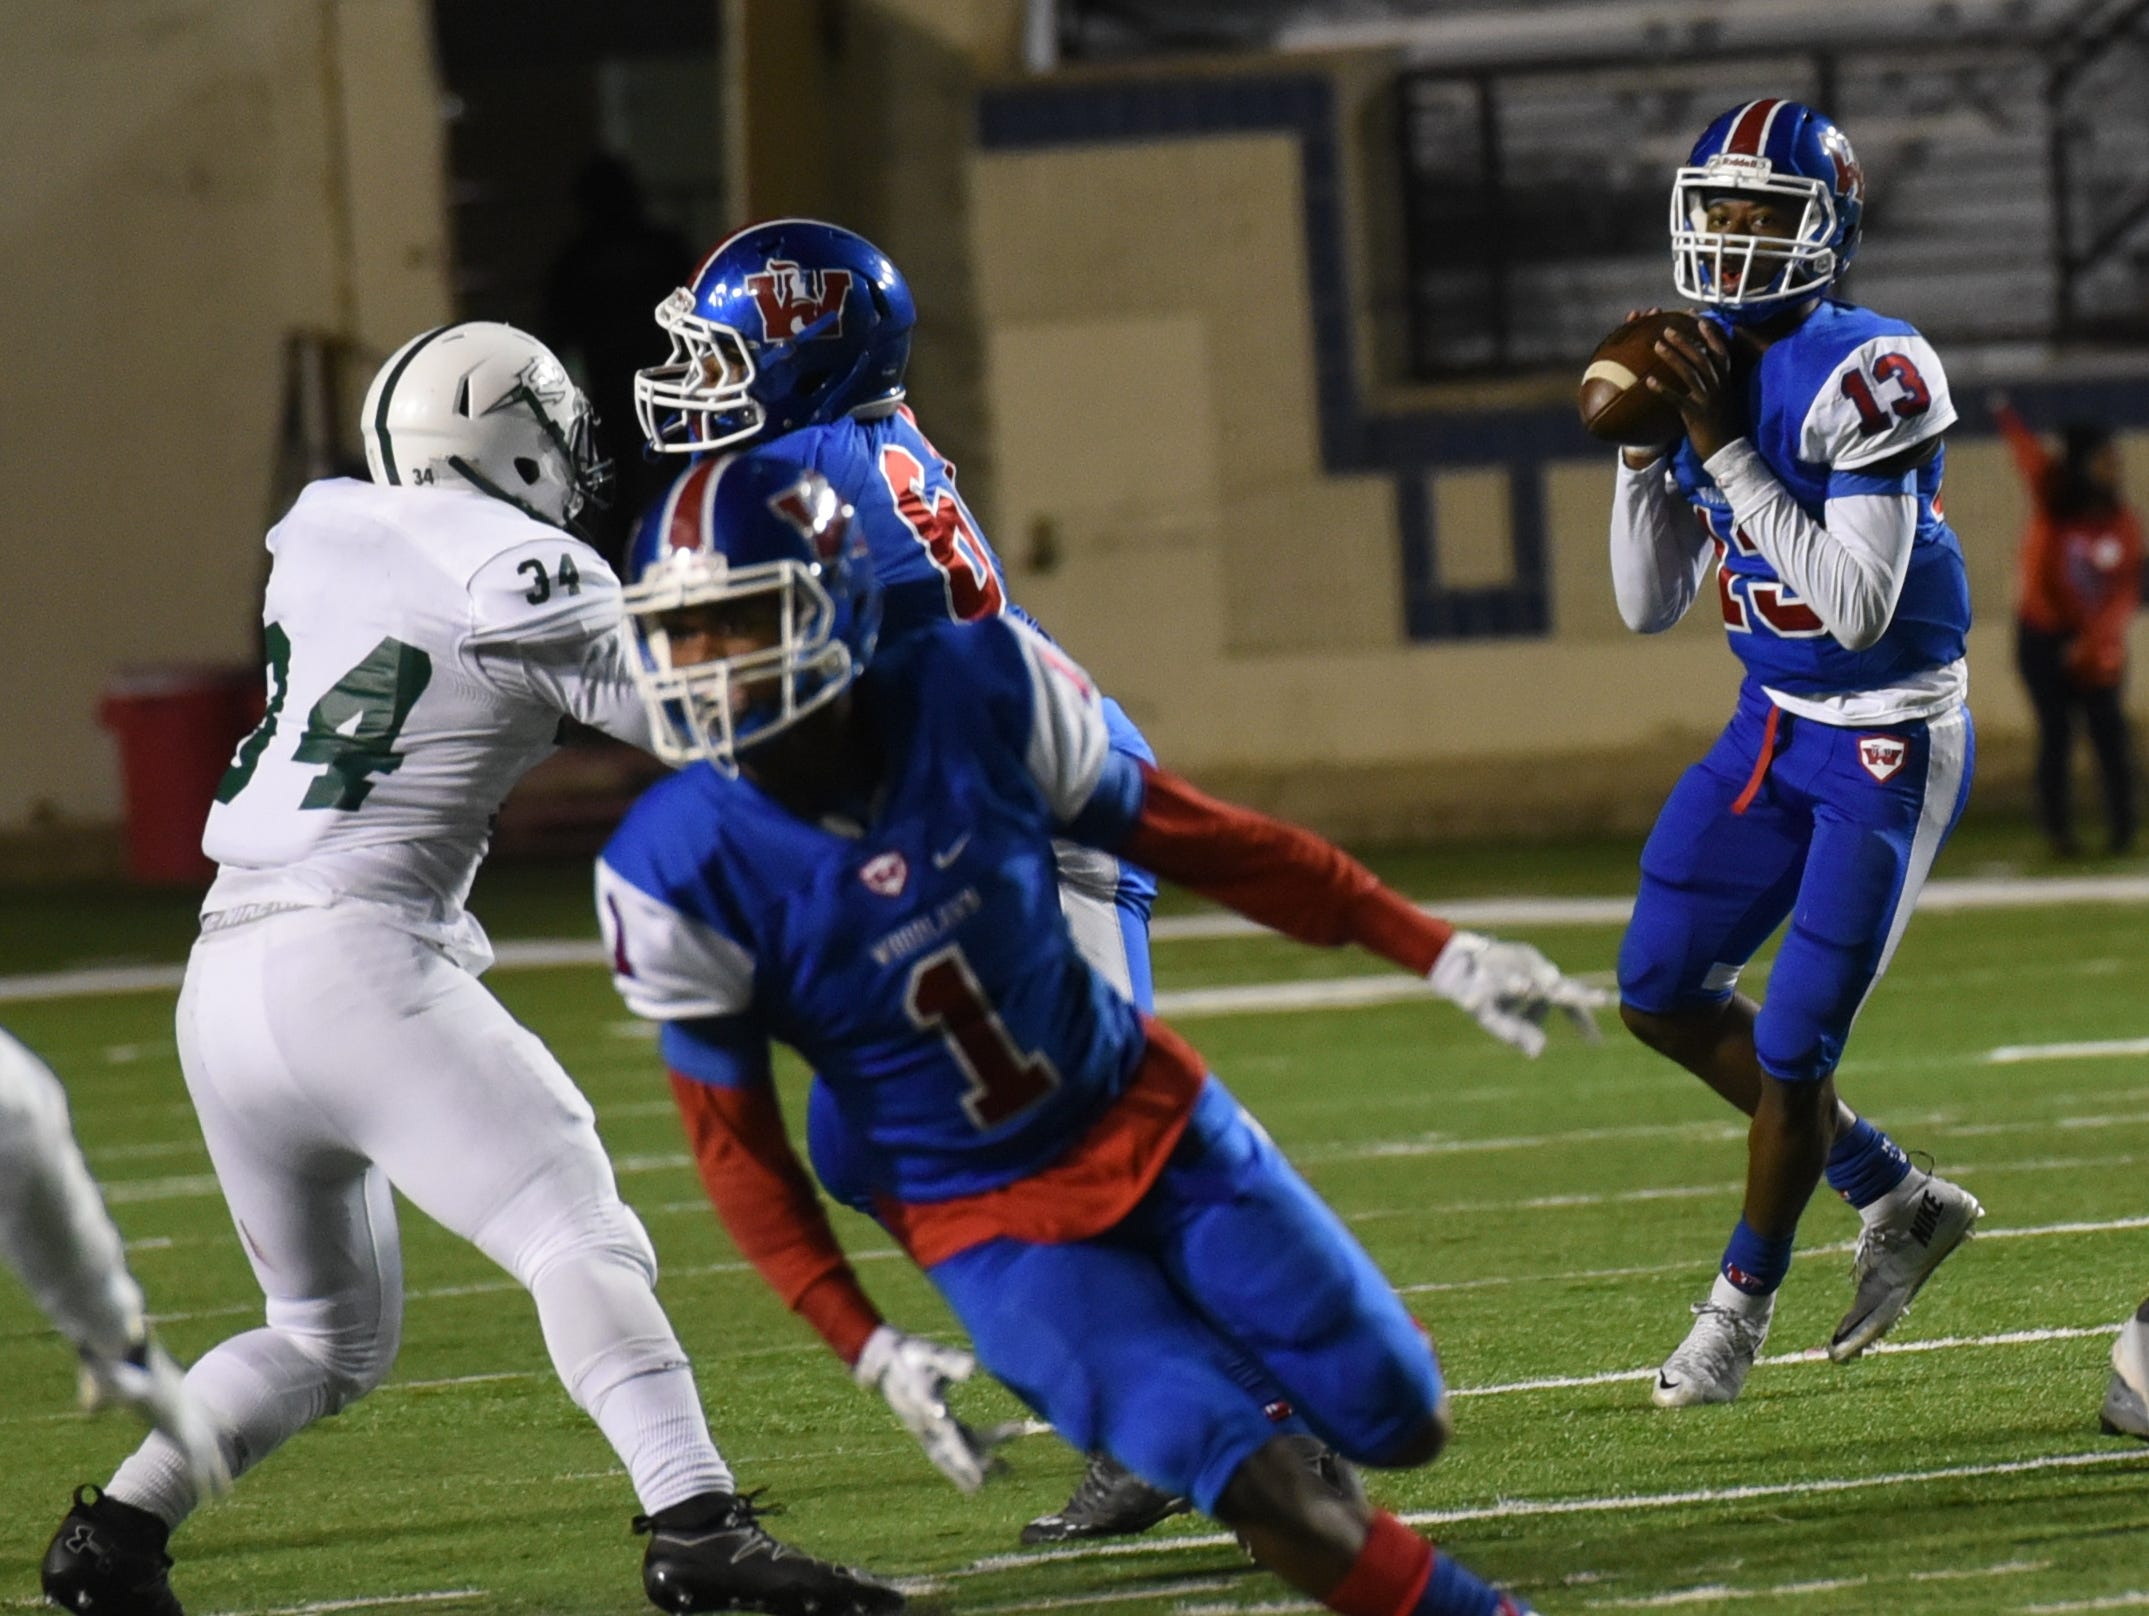 Woodlawn's Joshua Mosley looks for a receiver during their game against Plaquemine Friday evening at Independence Stadium.